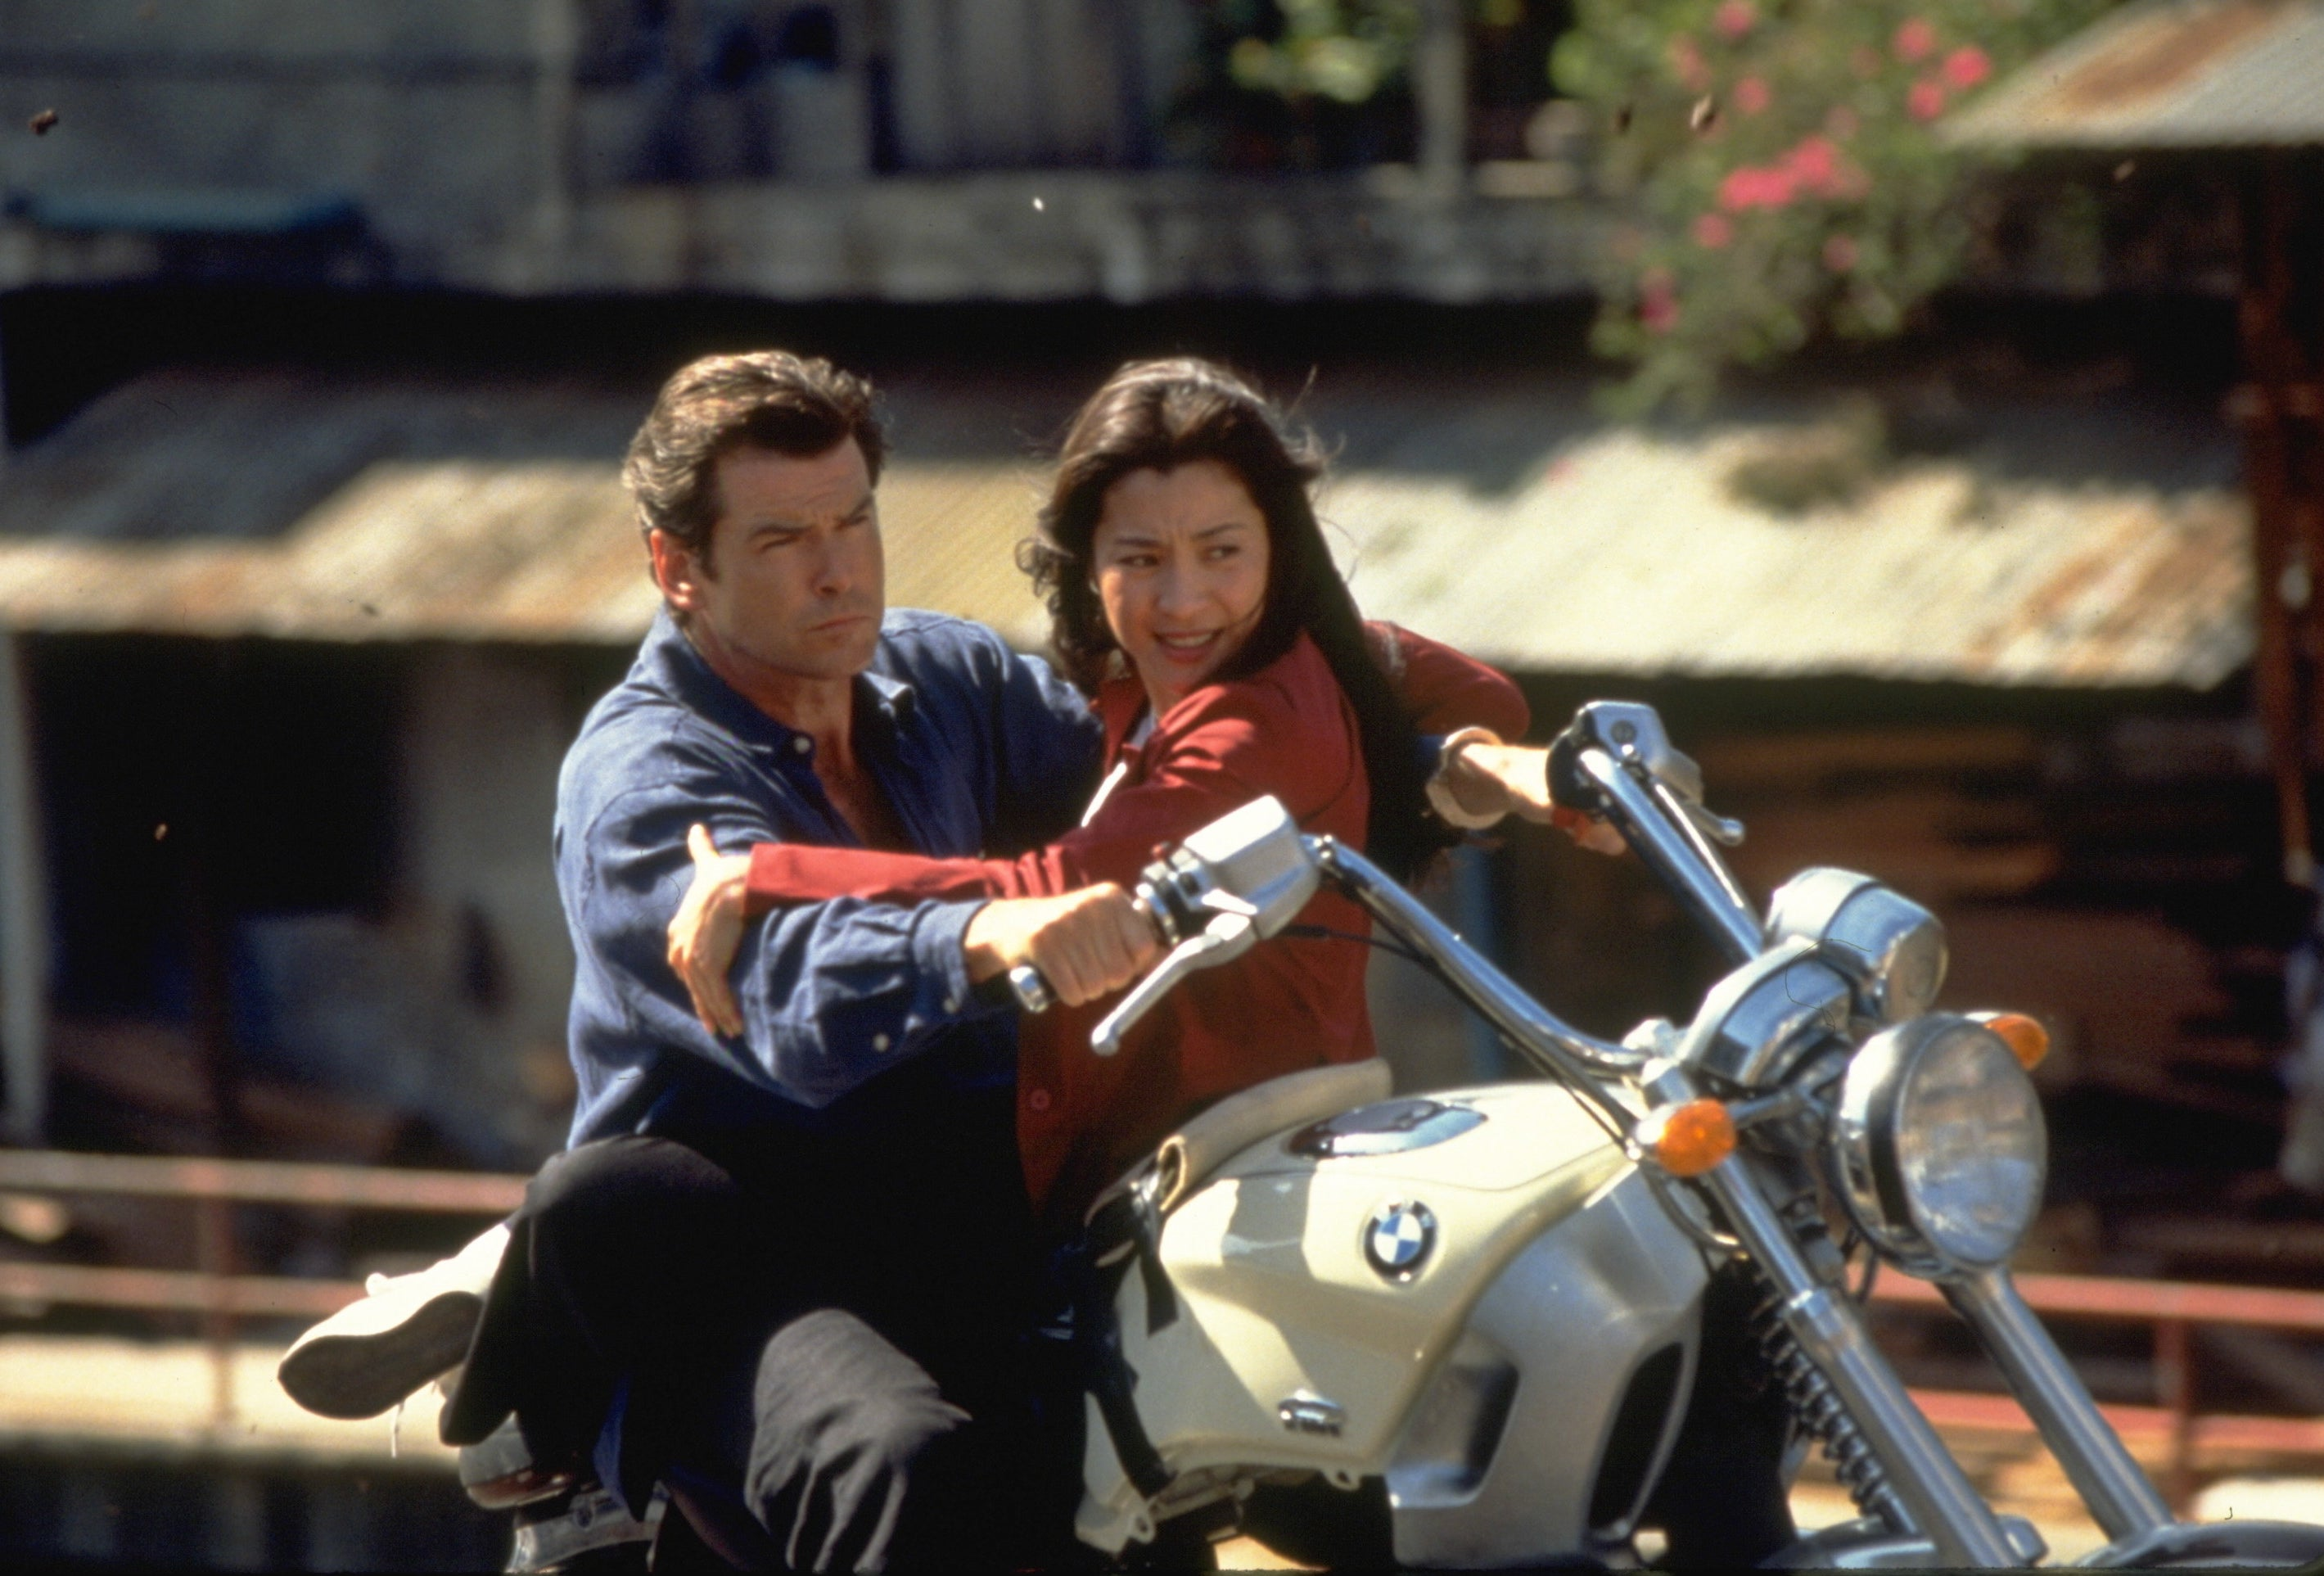 A man and a woman riding a motorcycle with the woman sitting in front of the man and facing the man.